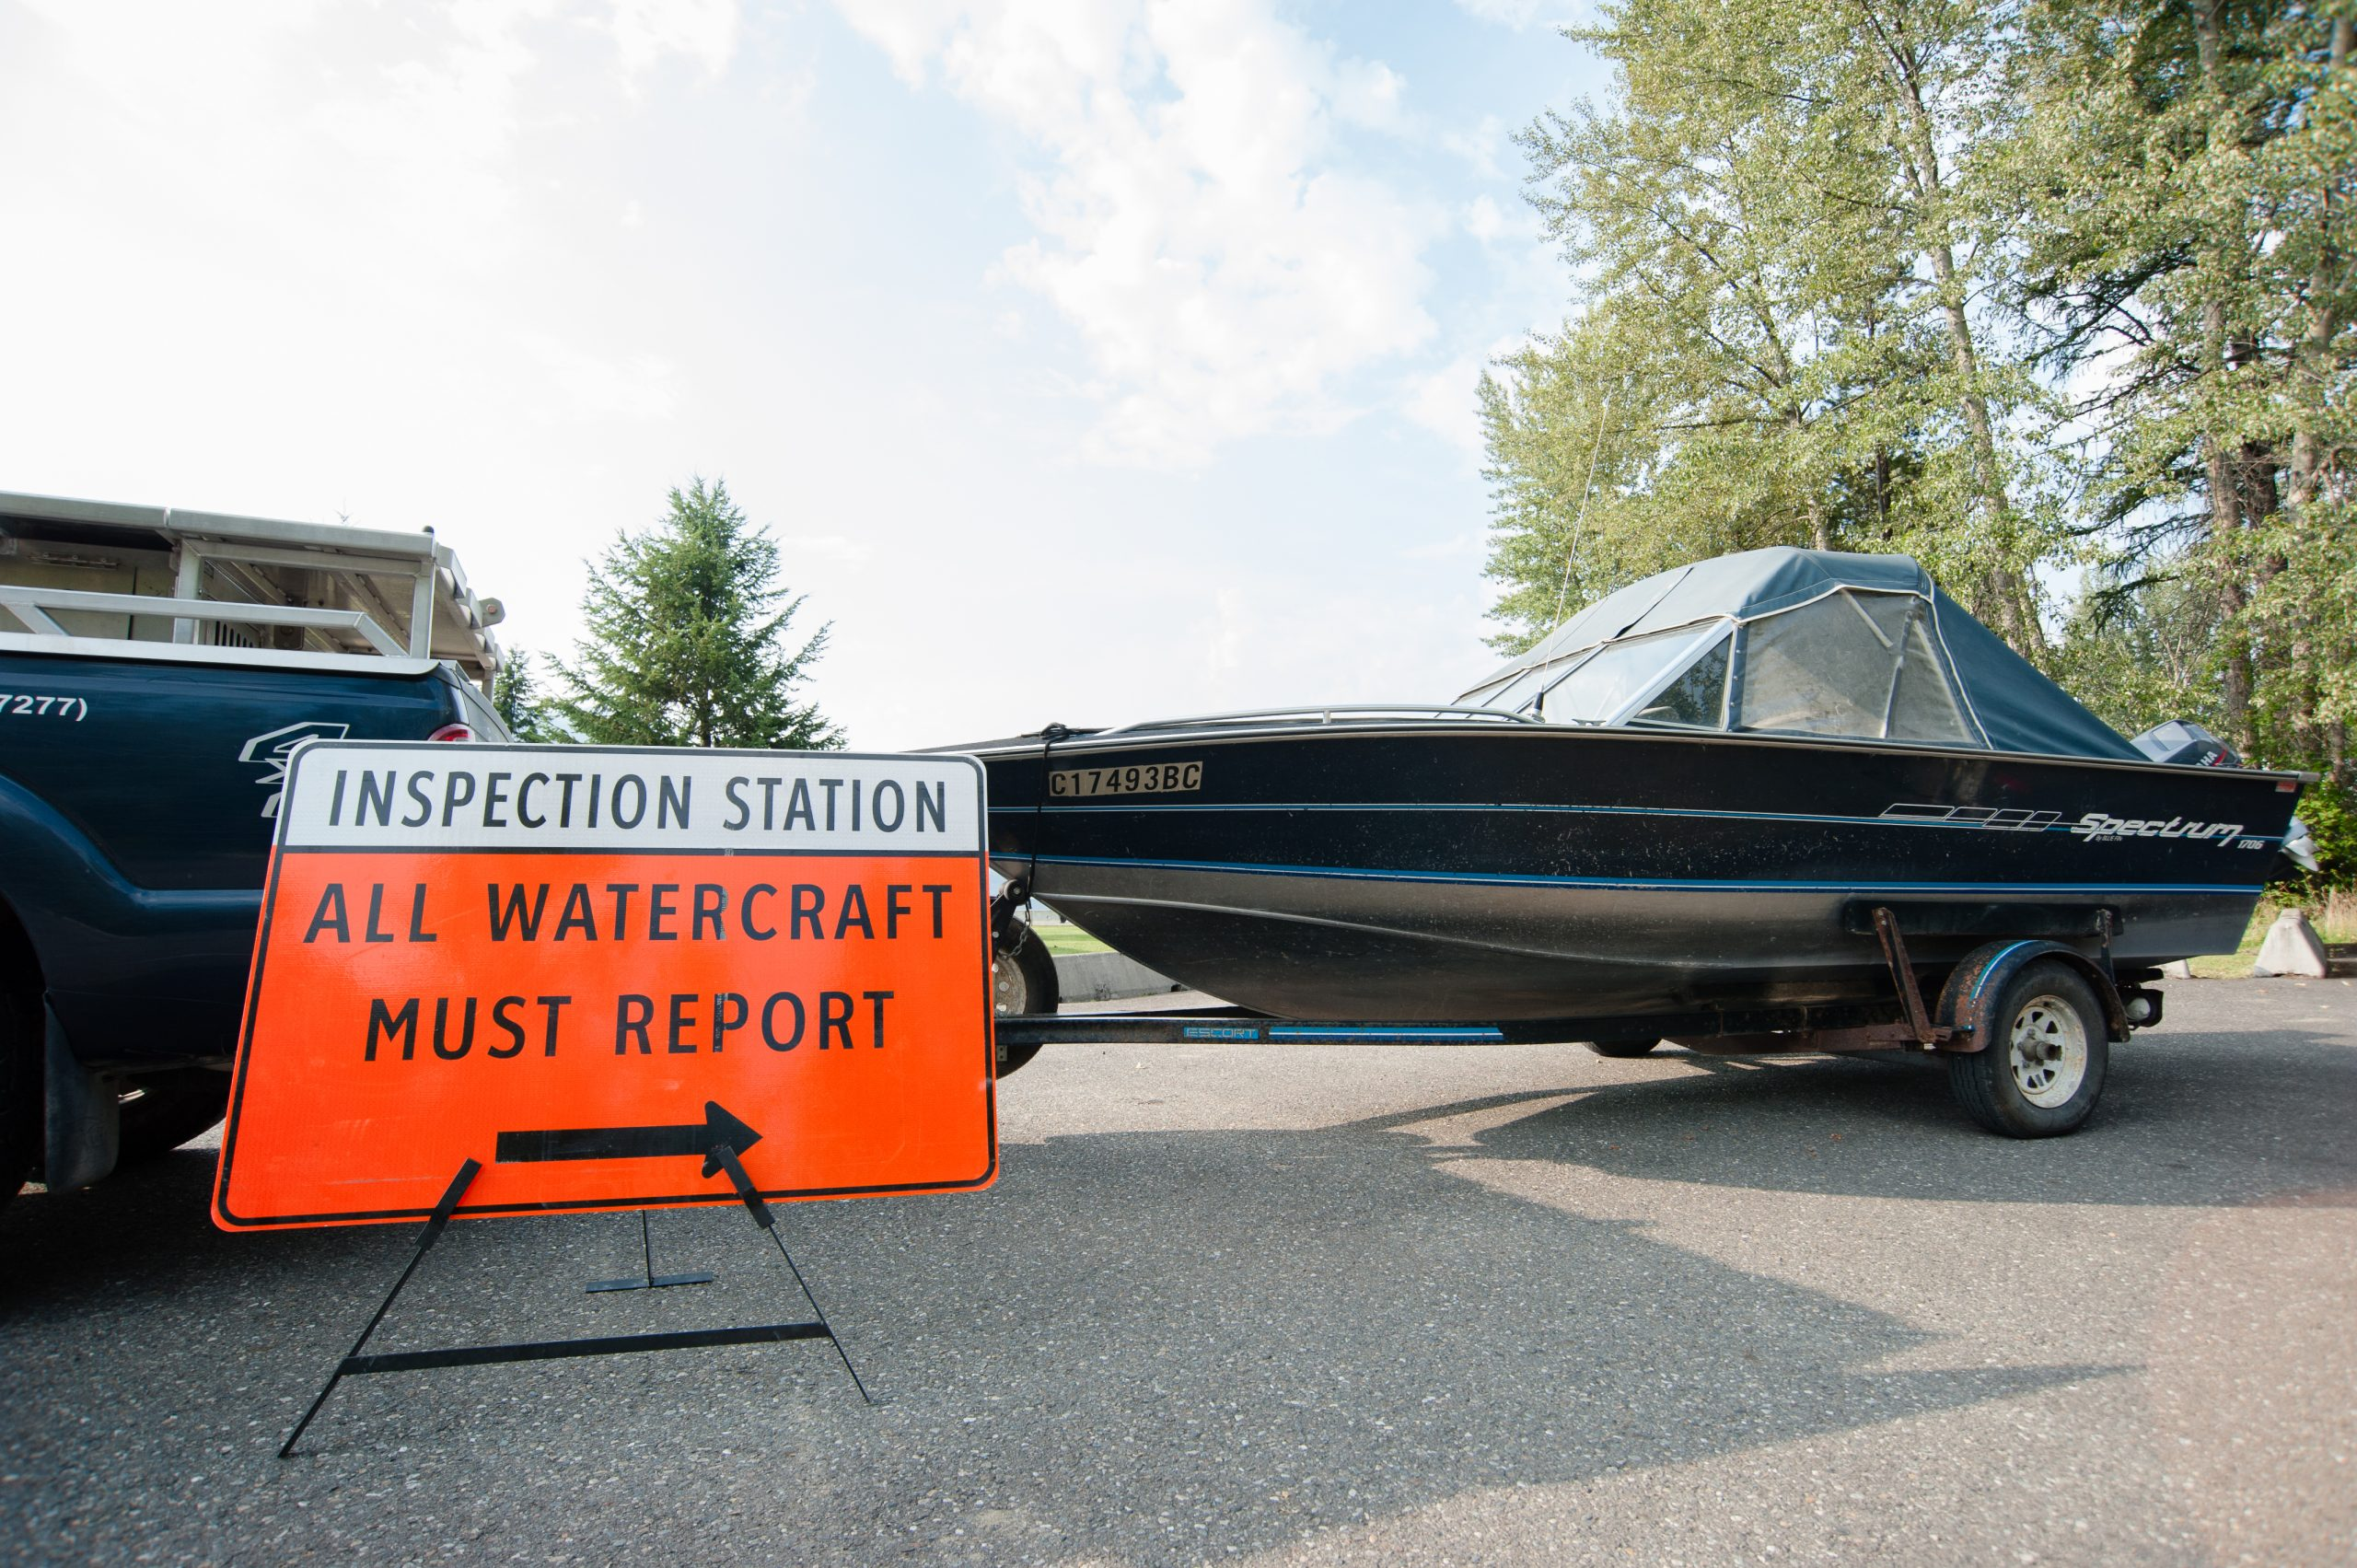 Province spending $3 million to combat zebra mussels, set up Yahk inspection point